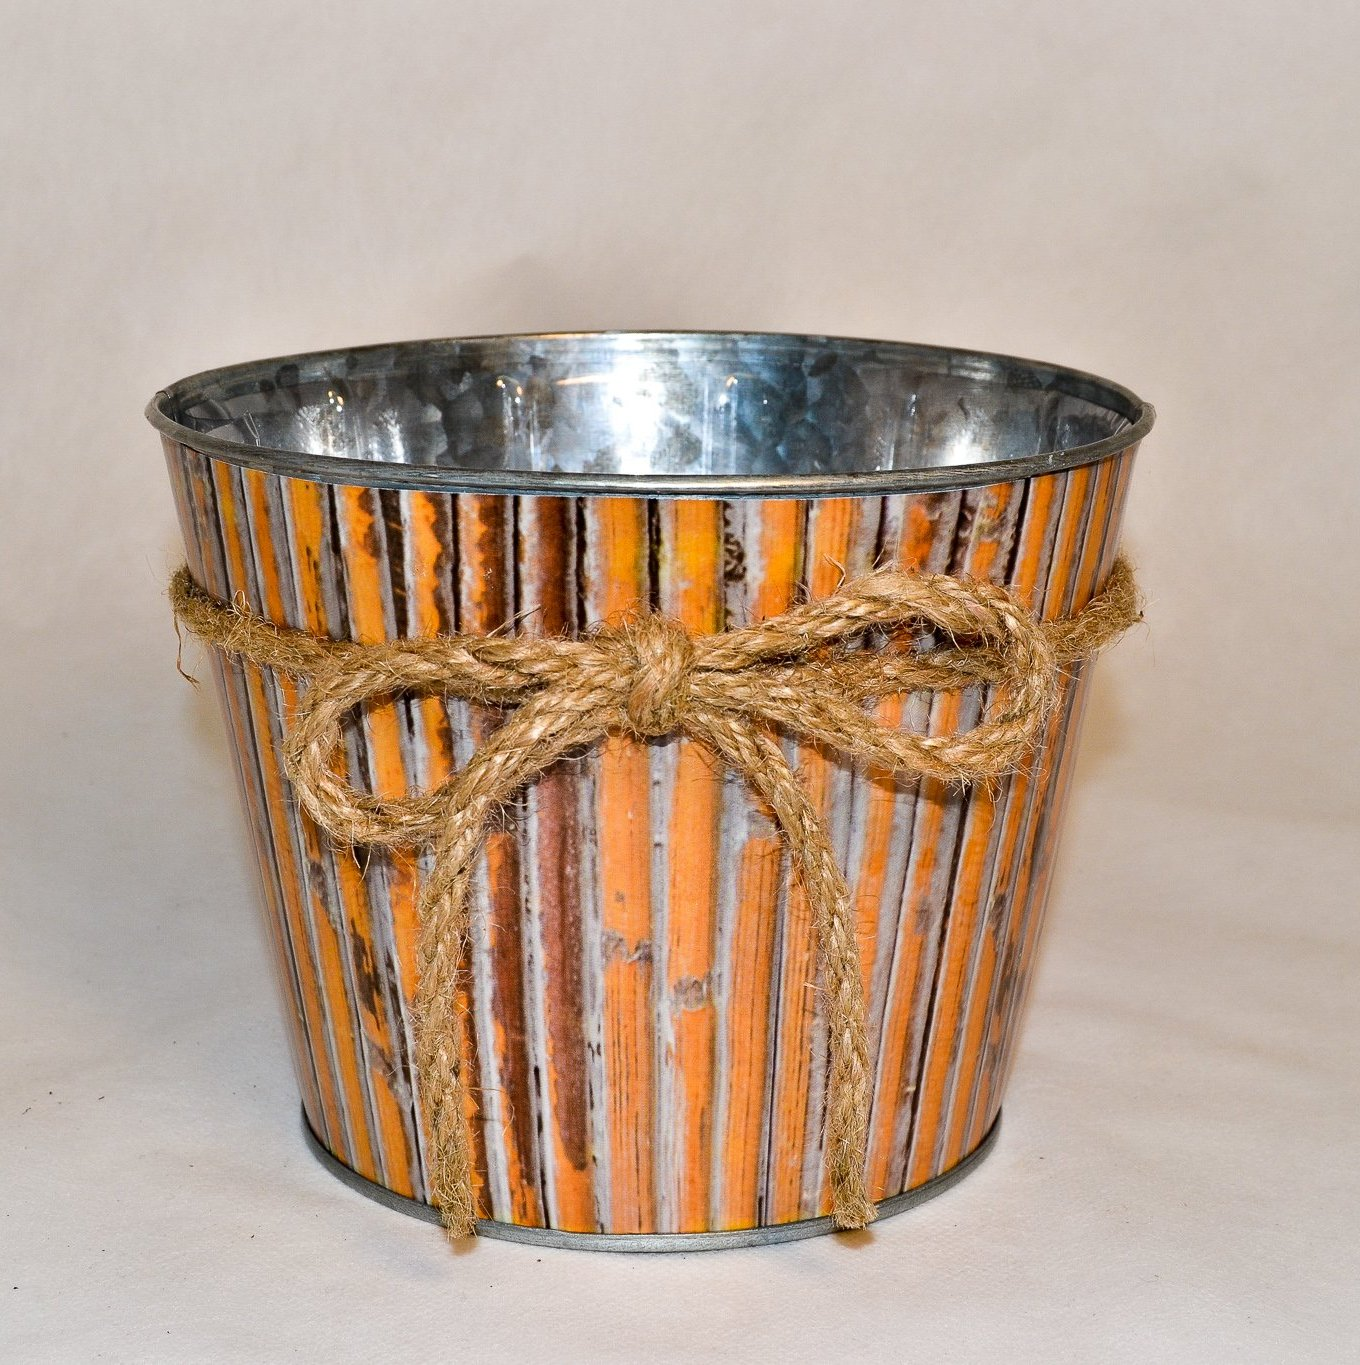 Bamboo Decor Metal Pot